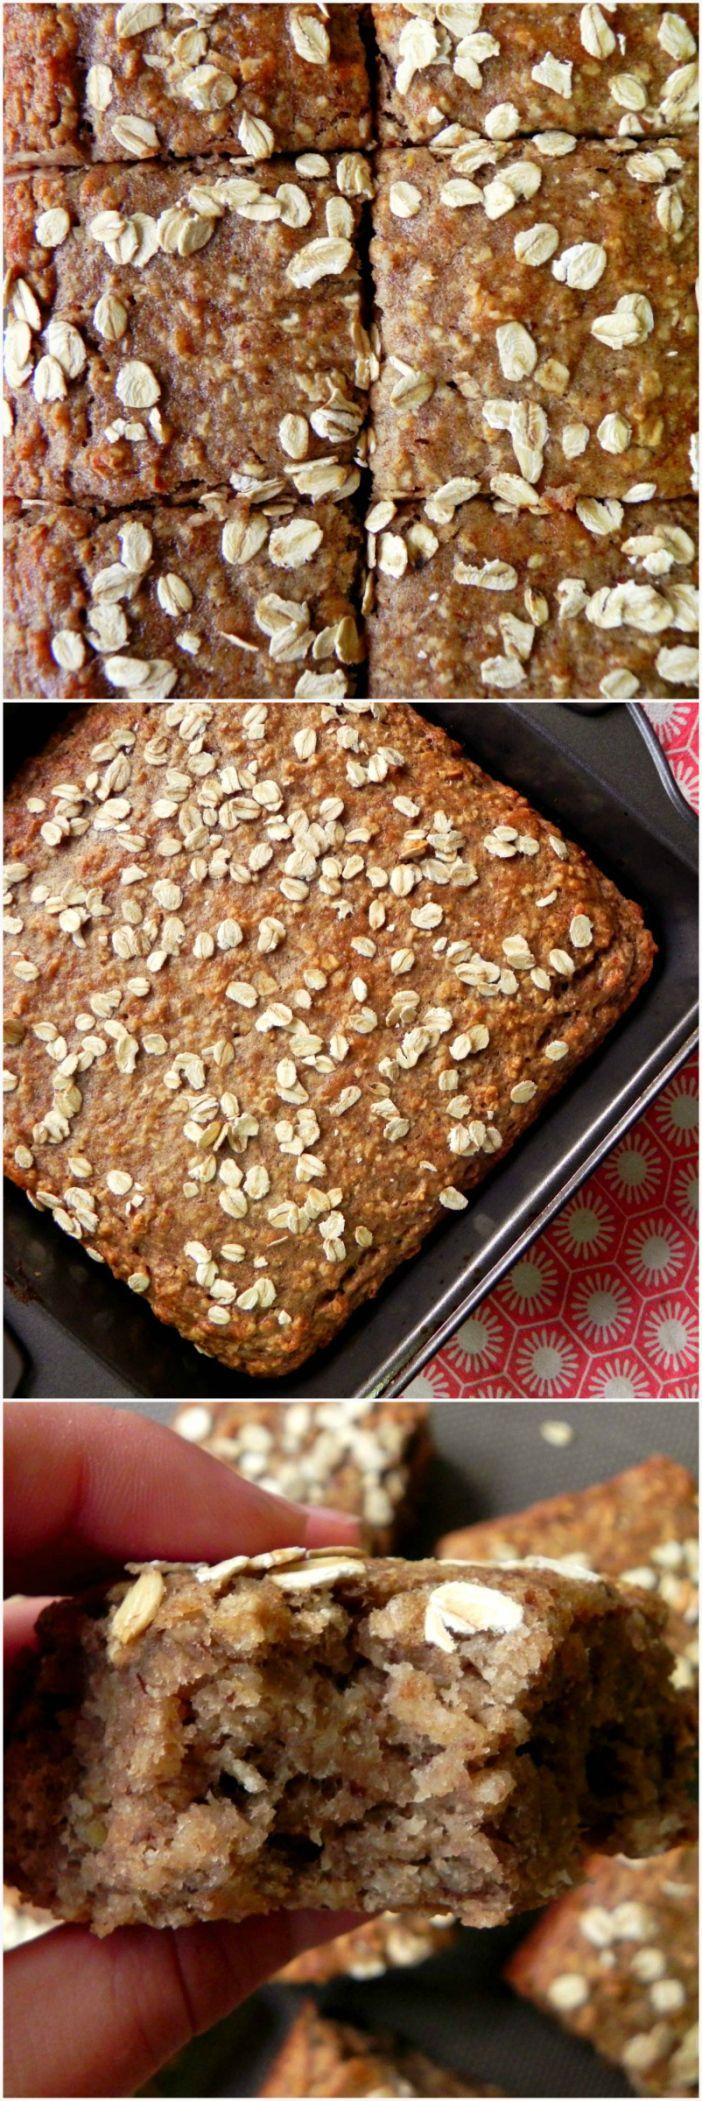 Banana & Oat Breakfast Cake with FIVE bananas! Great on the go breakfast!